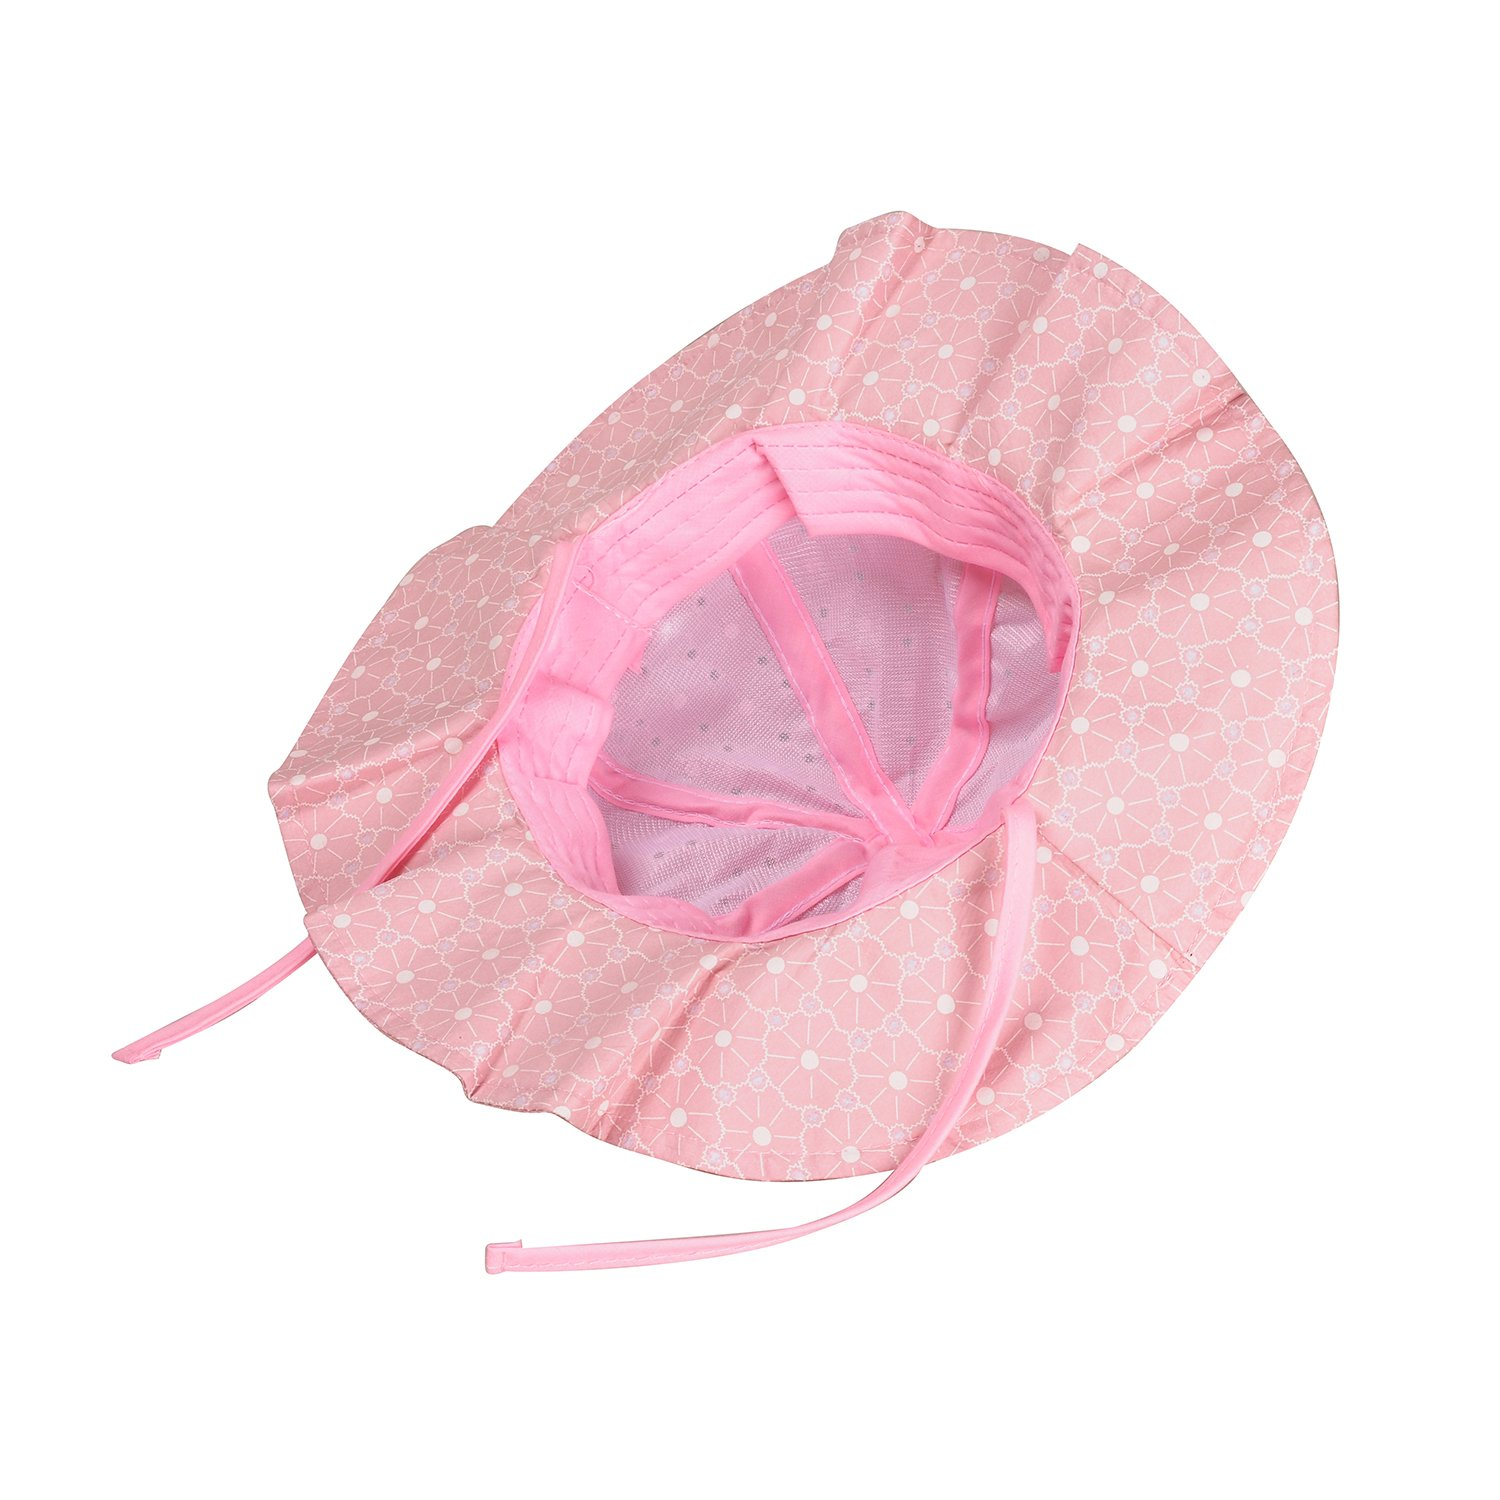 RORKEE Infant Toddlers Baby Girls Wide Brim Sun Protection Summer Floppy Hat(Pack of 2) by RORKEE (Image #3)